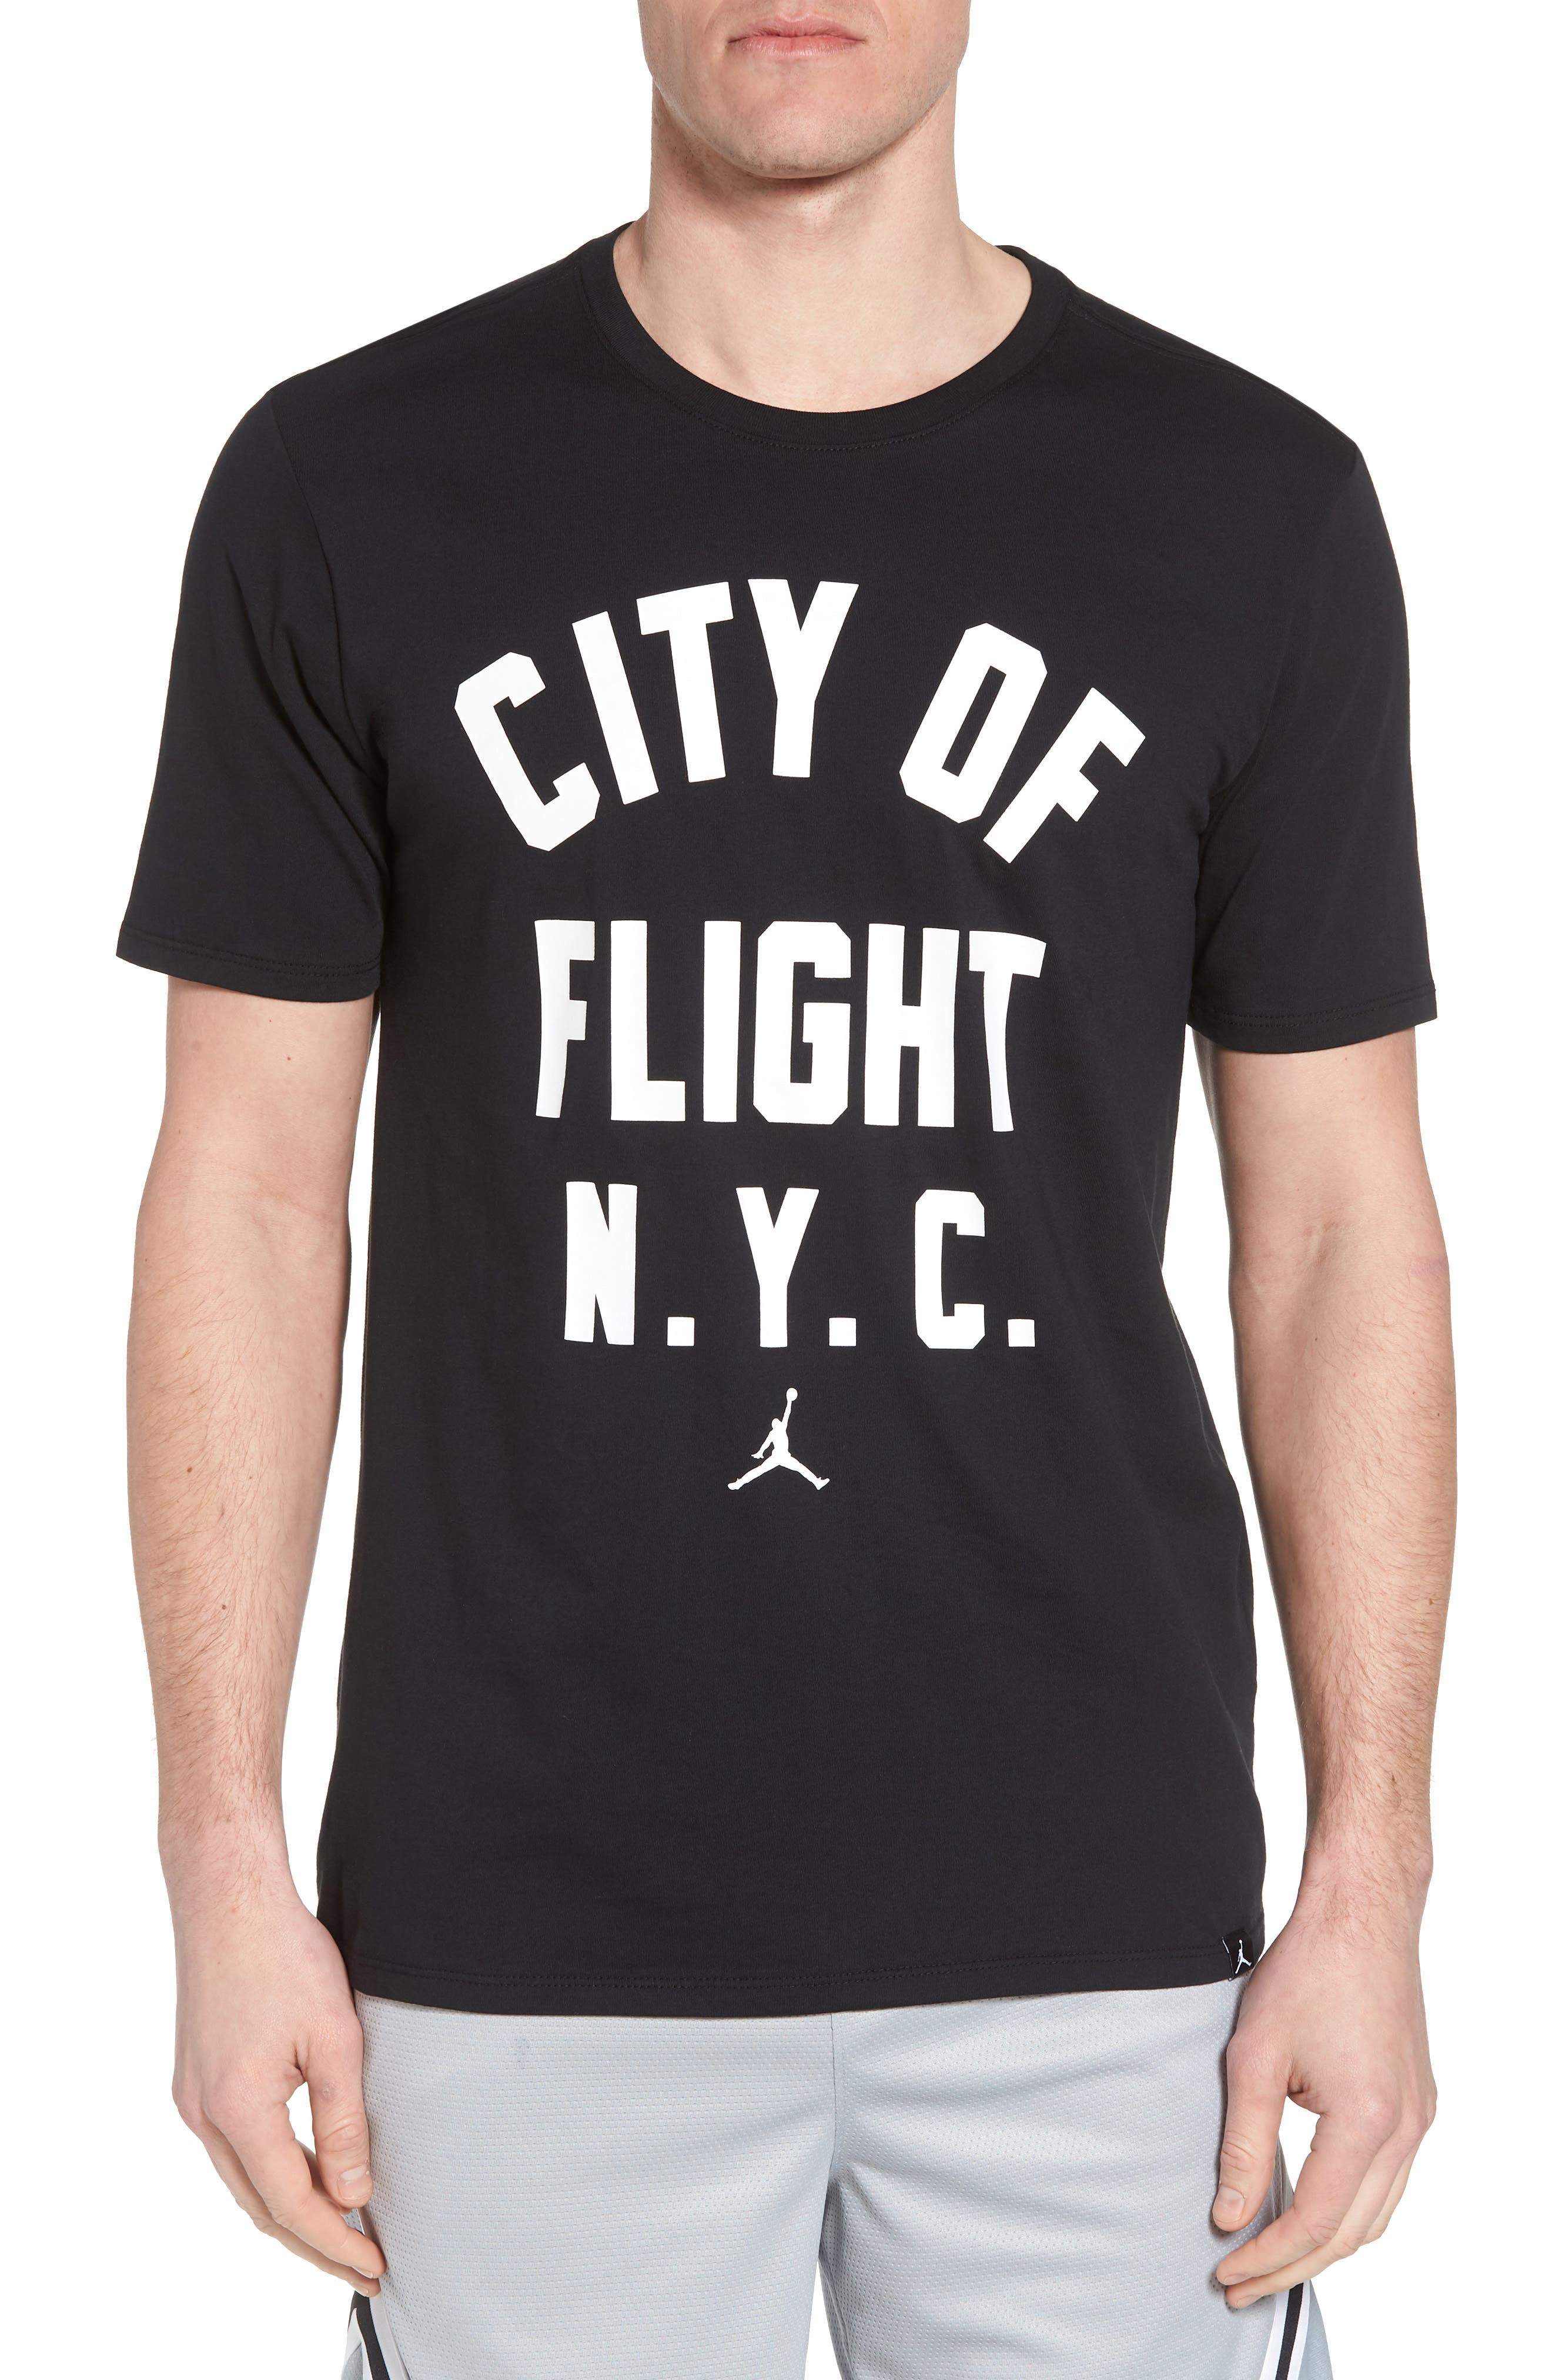 Sportswear City of Flight T-Shirt,                         Main,                         color, 011